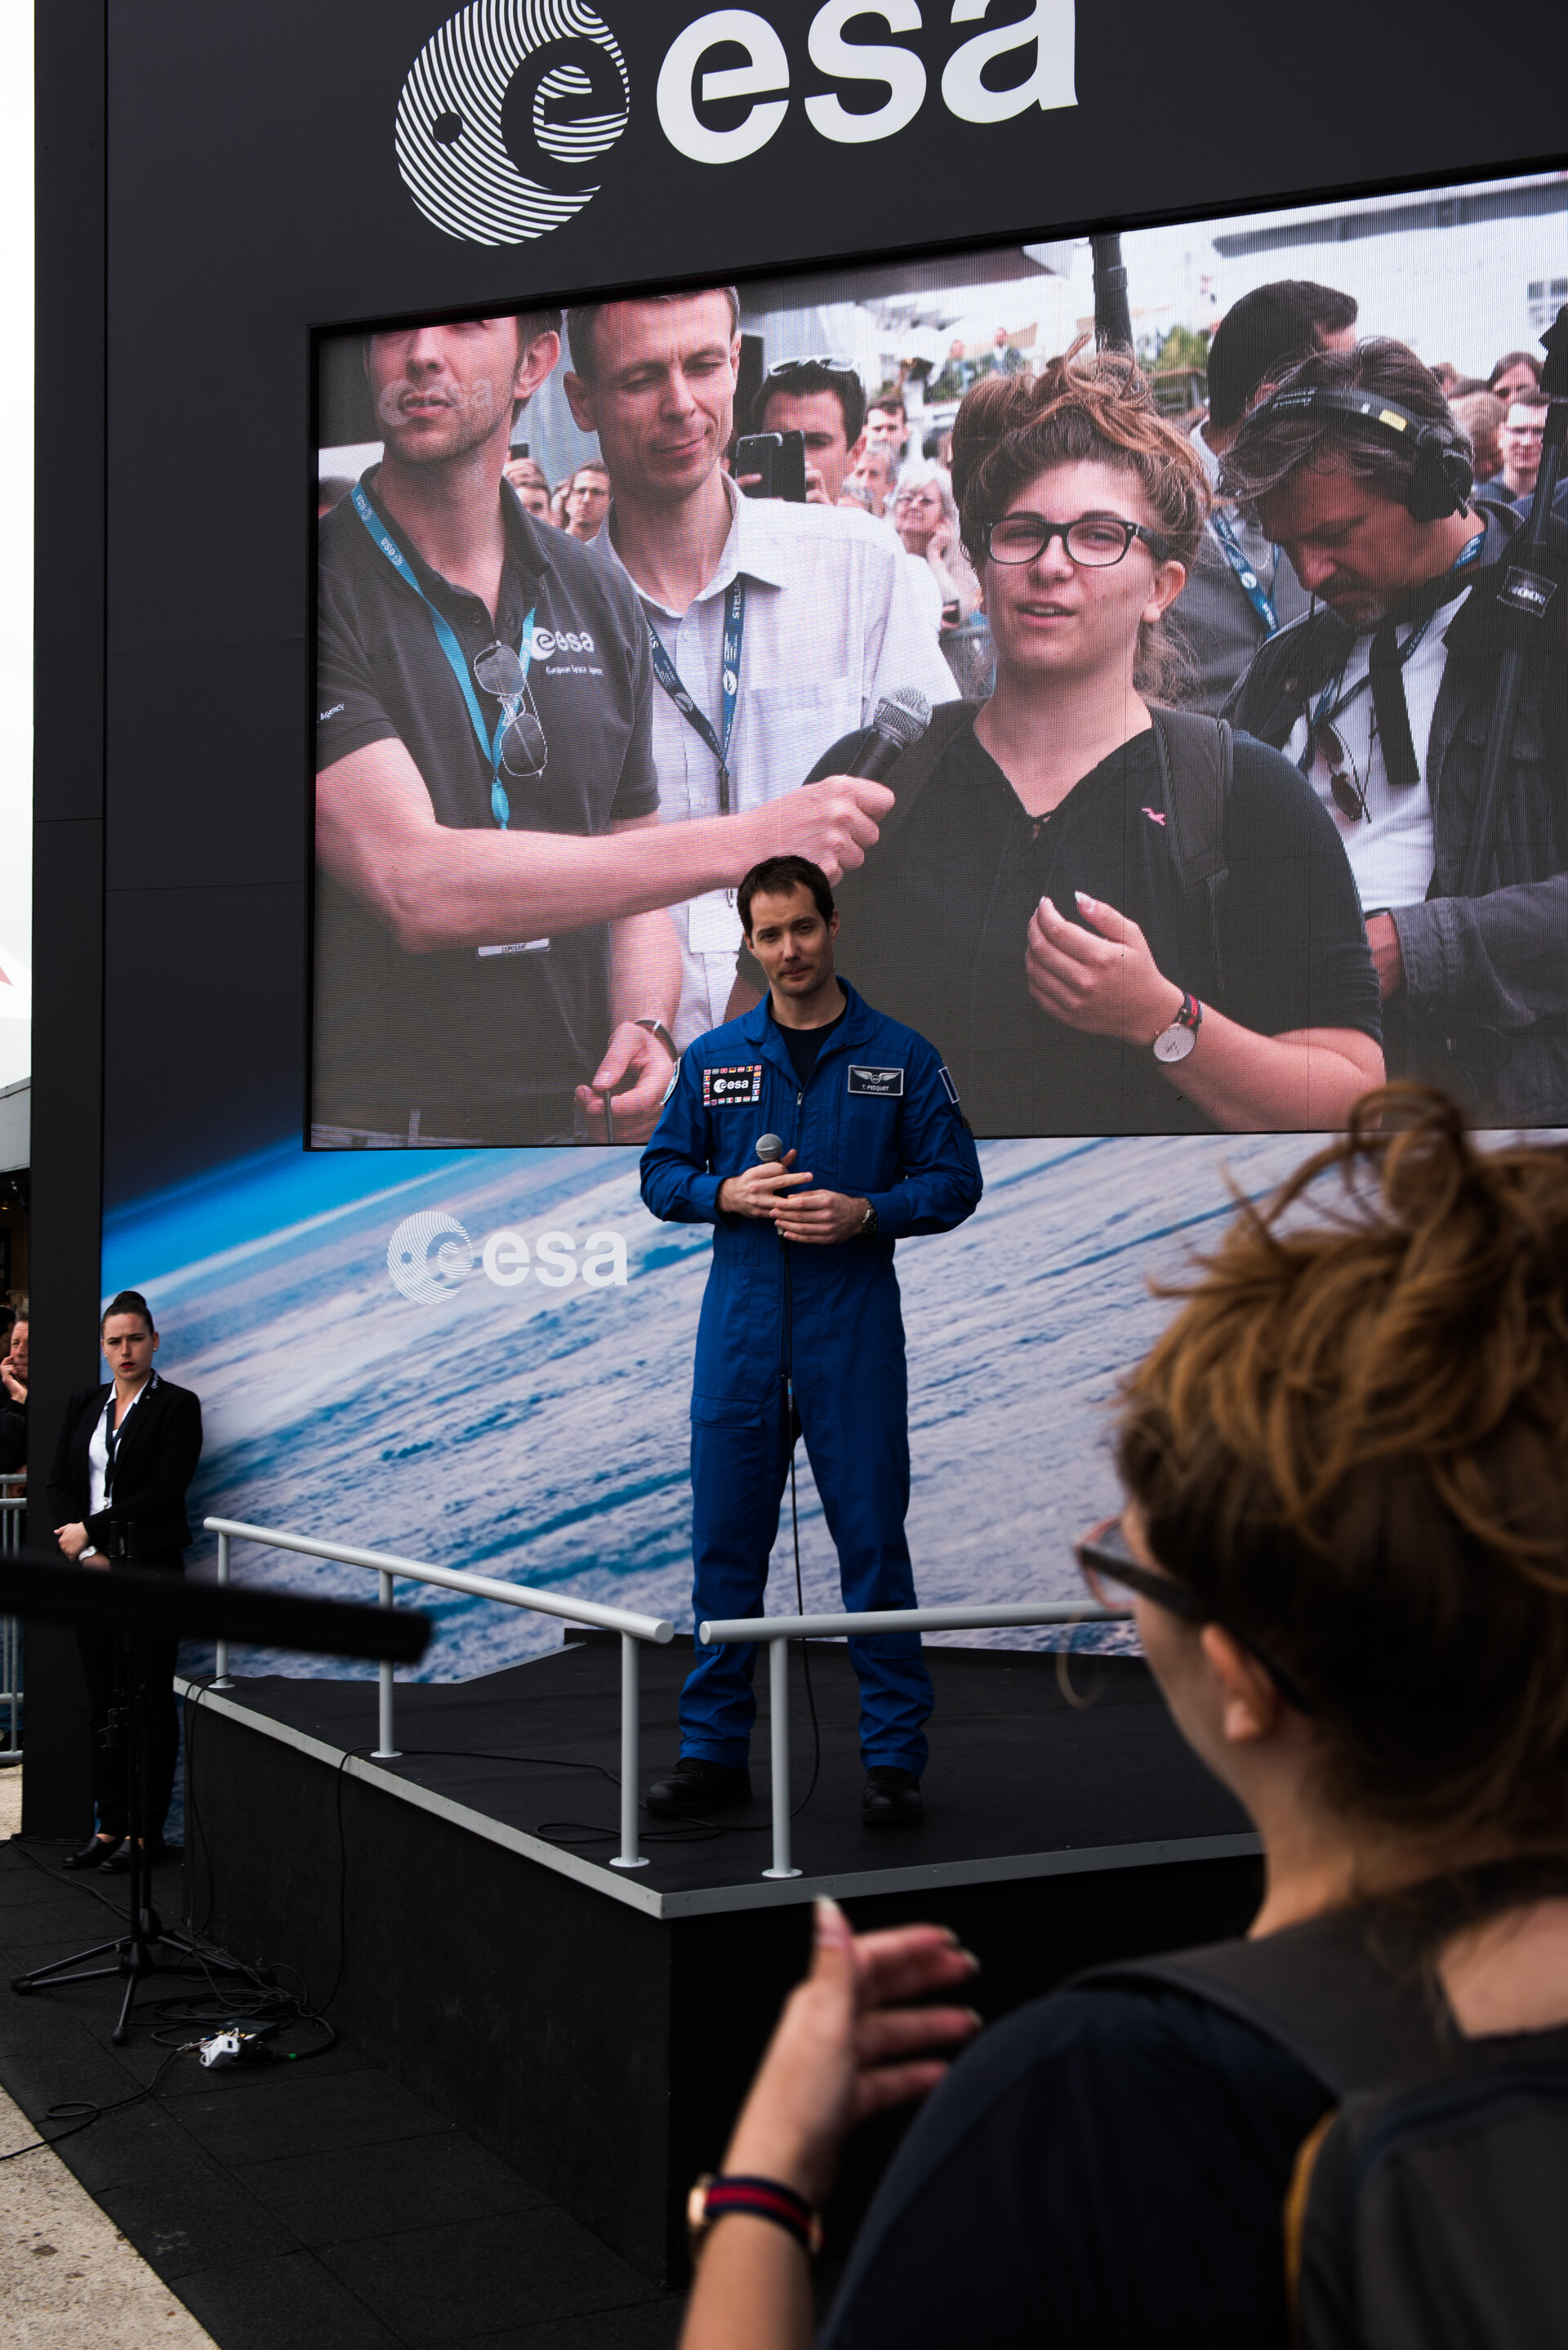 Q&A session with ESA Astronaut Thomas Pesquet